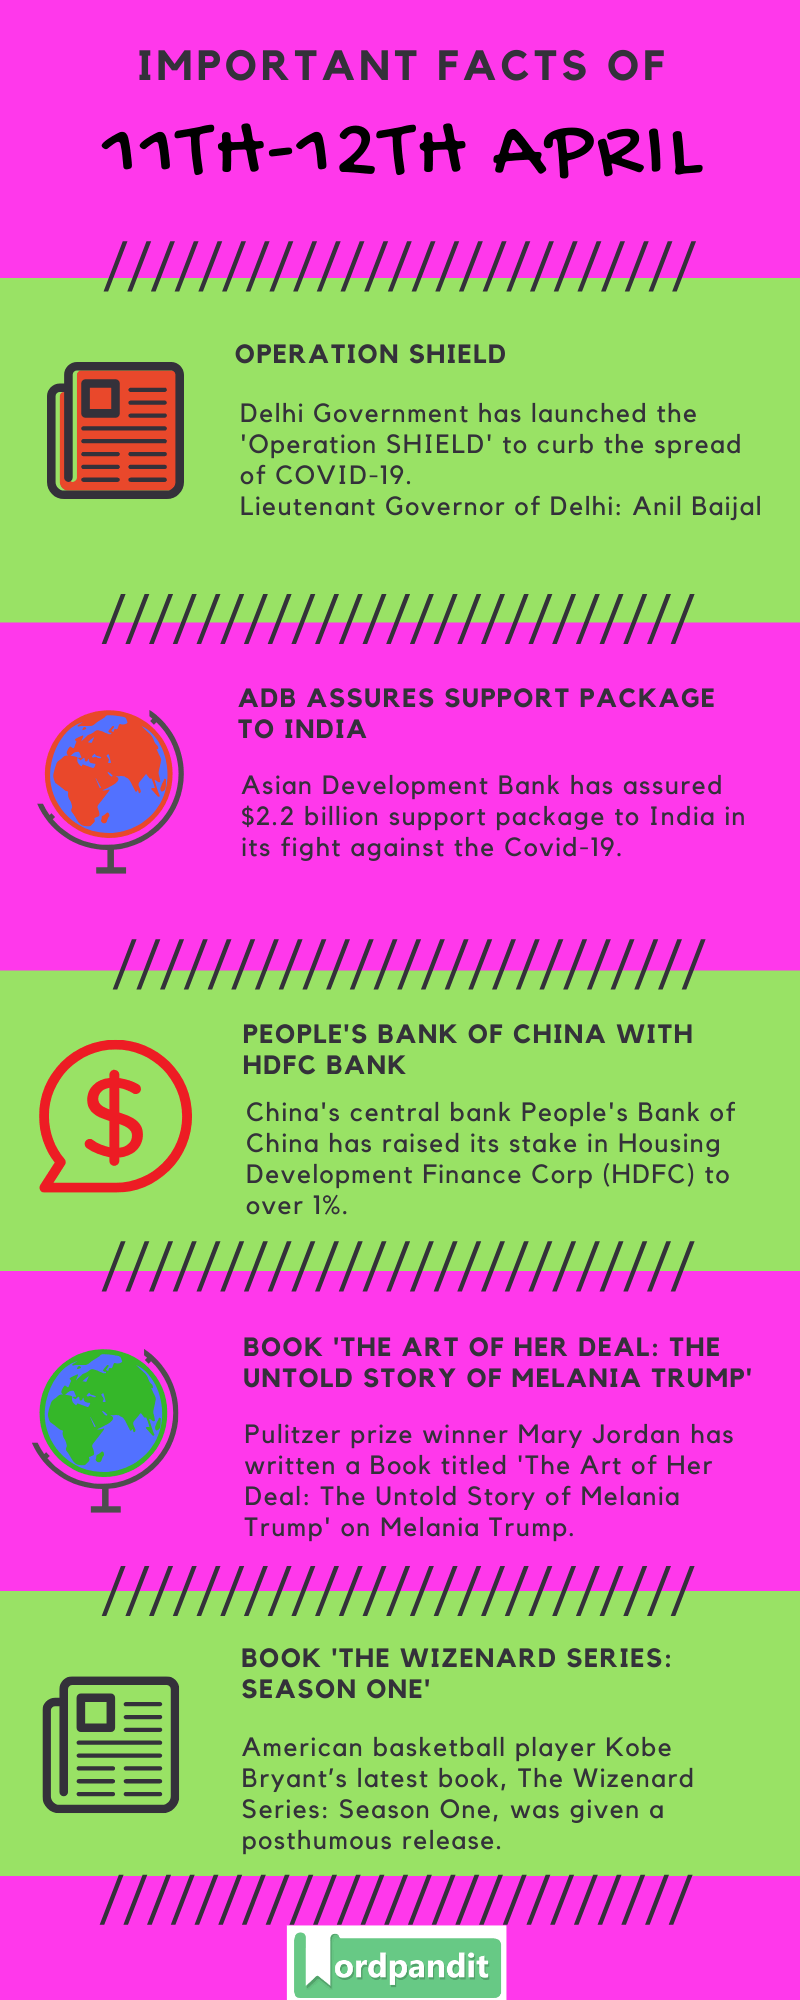 Daily Current Affairs 11 & 12 April 2020 Current Affairs Quiz 11 & 12 April 2020 Current Affairs Infographic